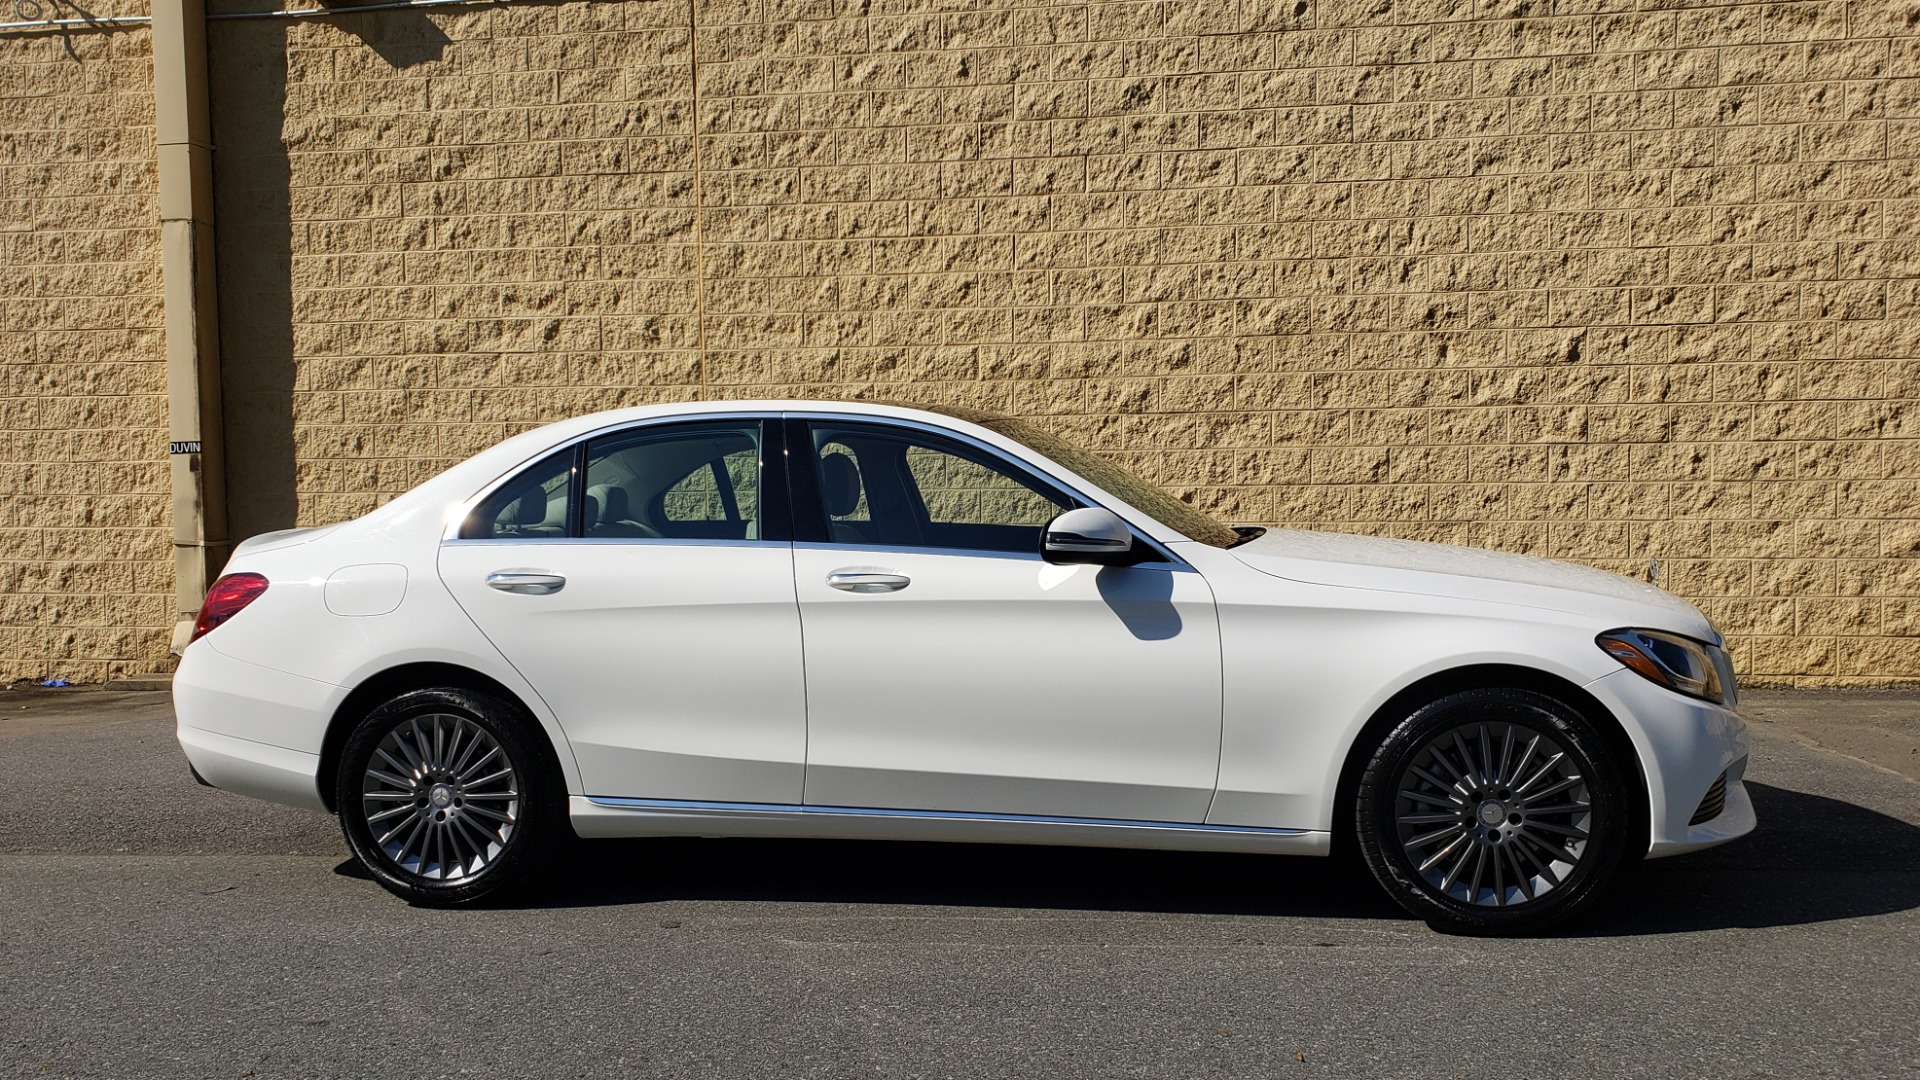 Used 2016 Mercedes-Benz C-Class C 300 LUXURY / NAV / PANO-ROOF / REARVIEW / BSM / HTD STS for sale Sold at Formula Imports in Charlotte NC 28227 5